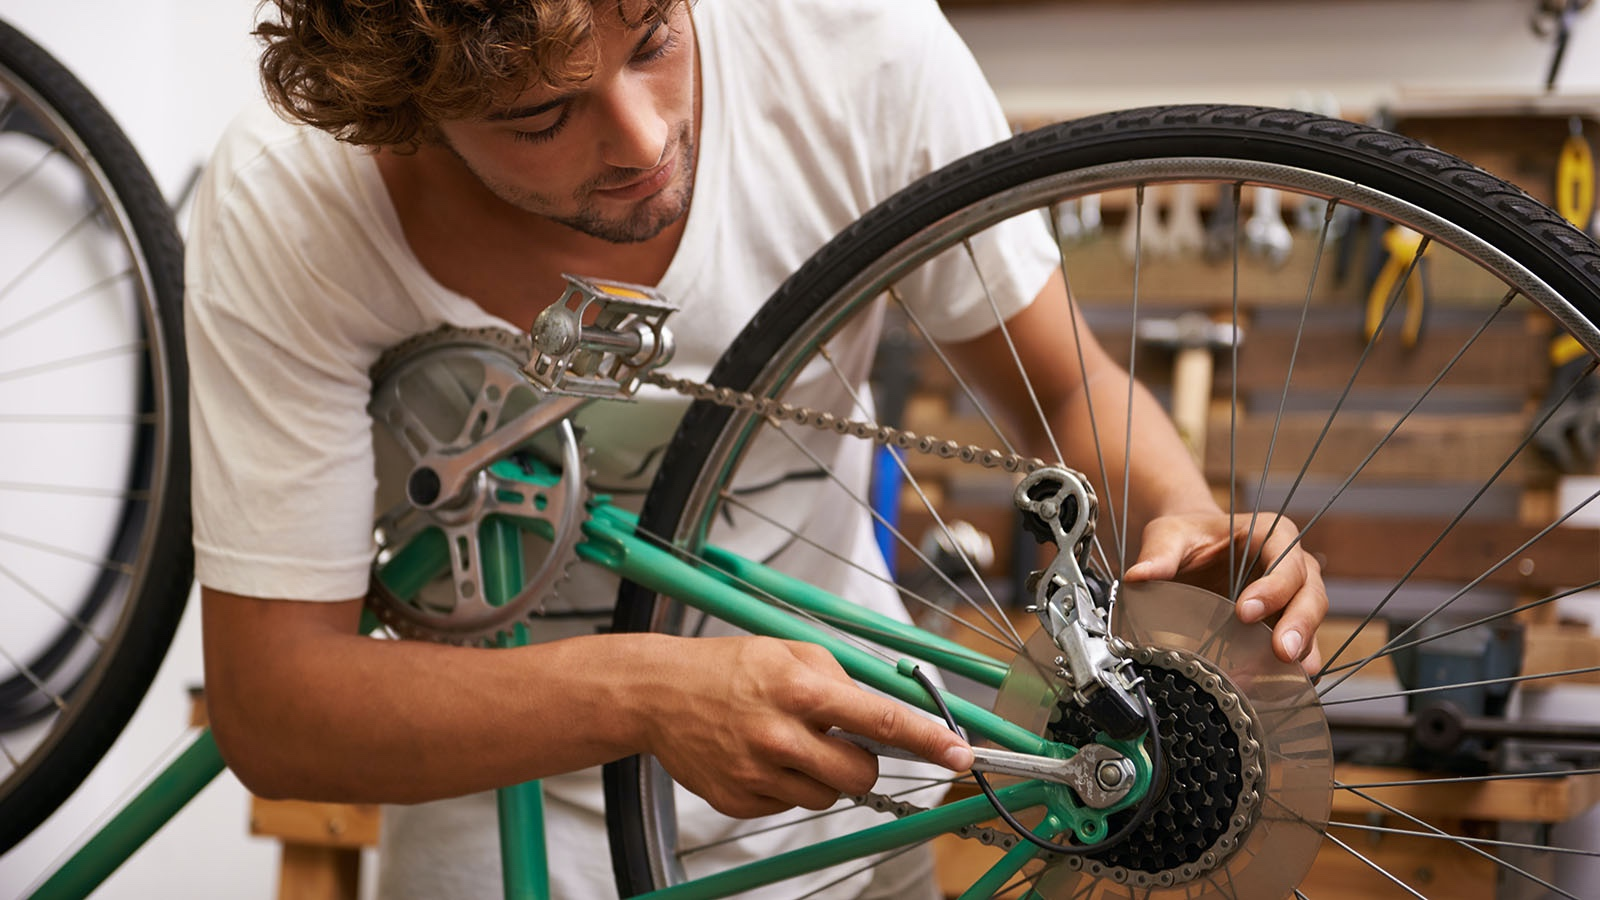 Wheel and Axle Simple Machine Example Bicycle Gear